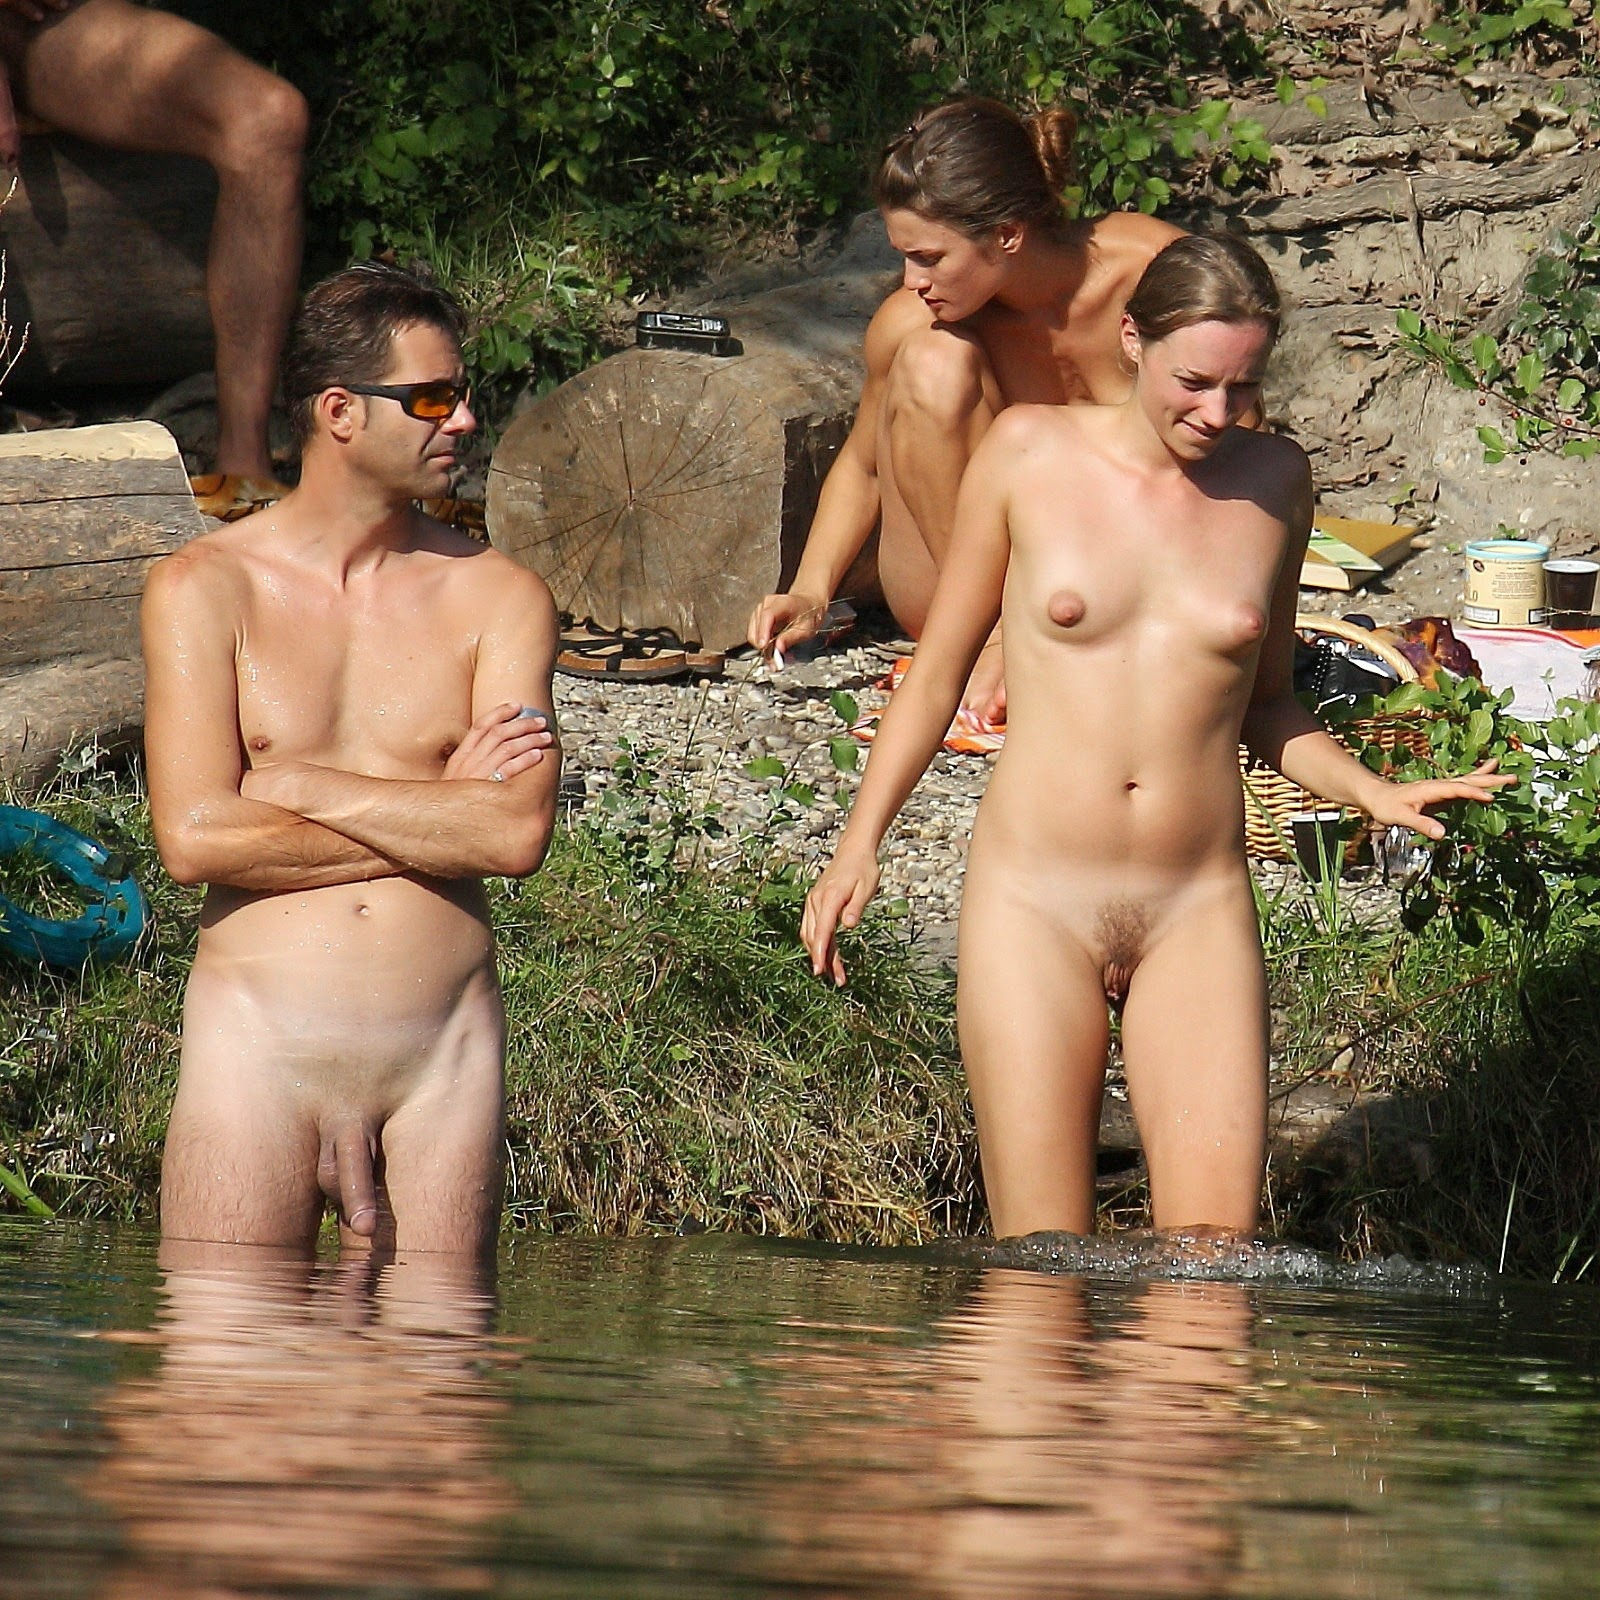 Apologise, Mixed swim team nude